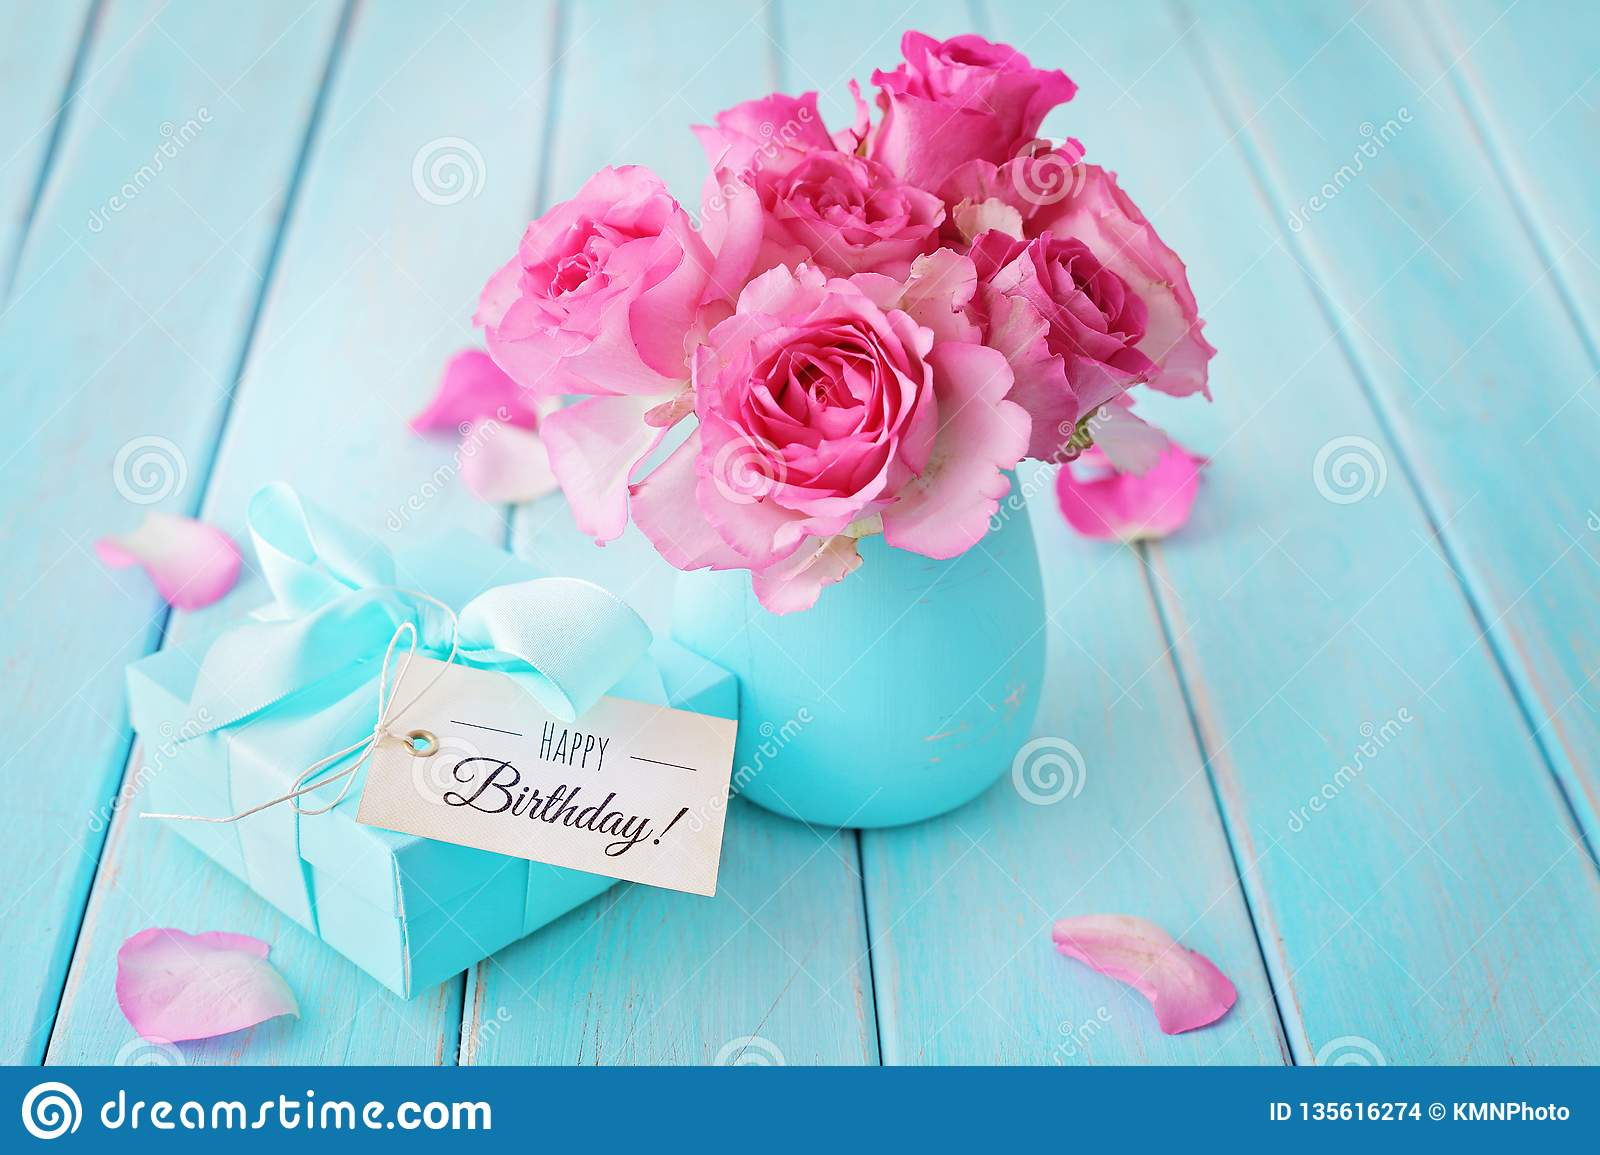 Flowers and birthday gift